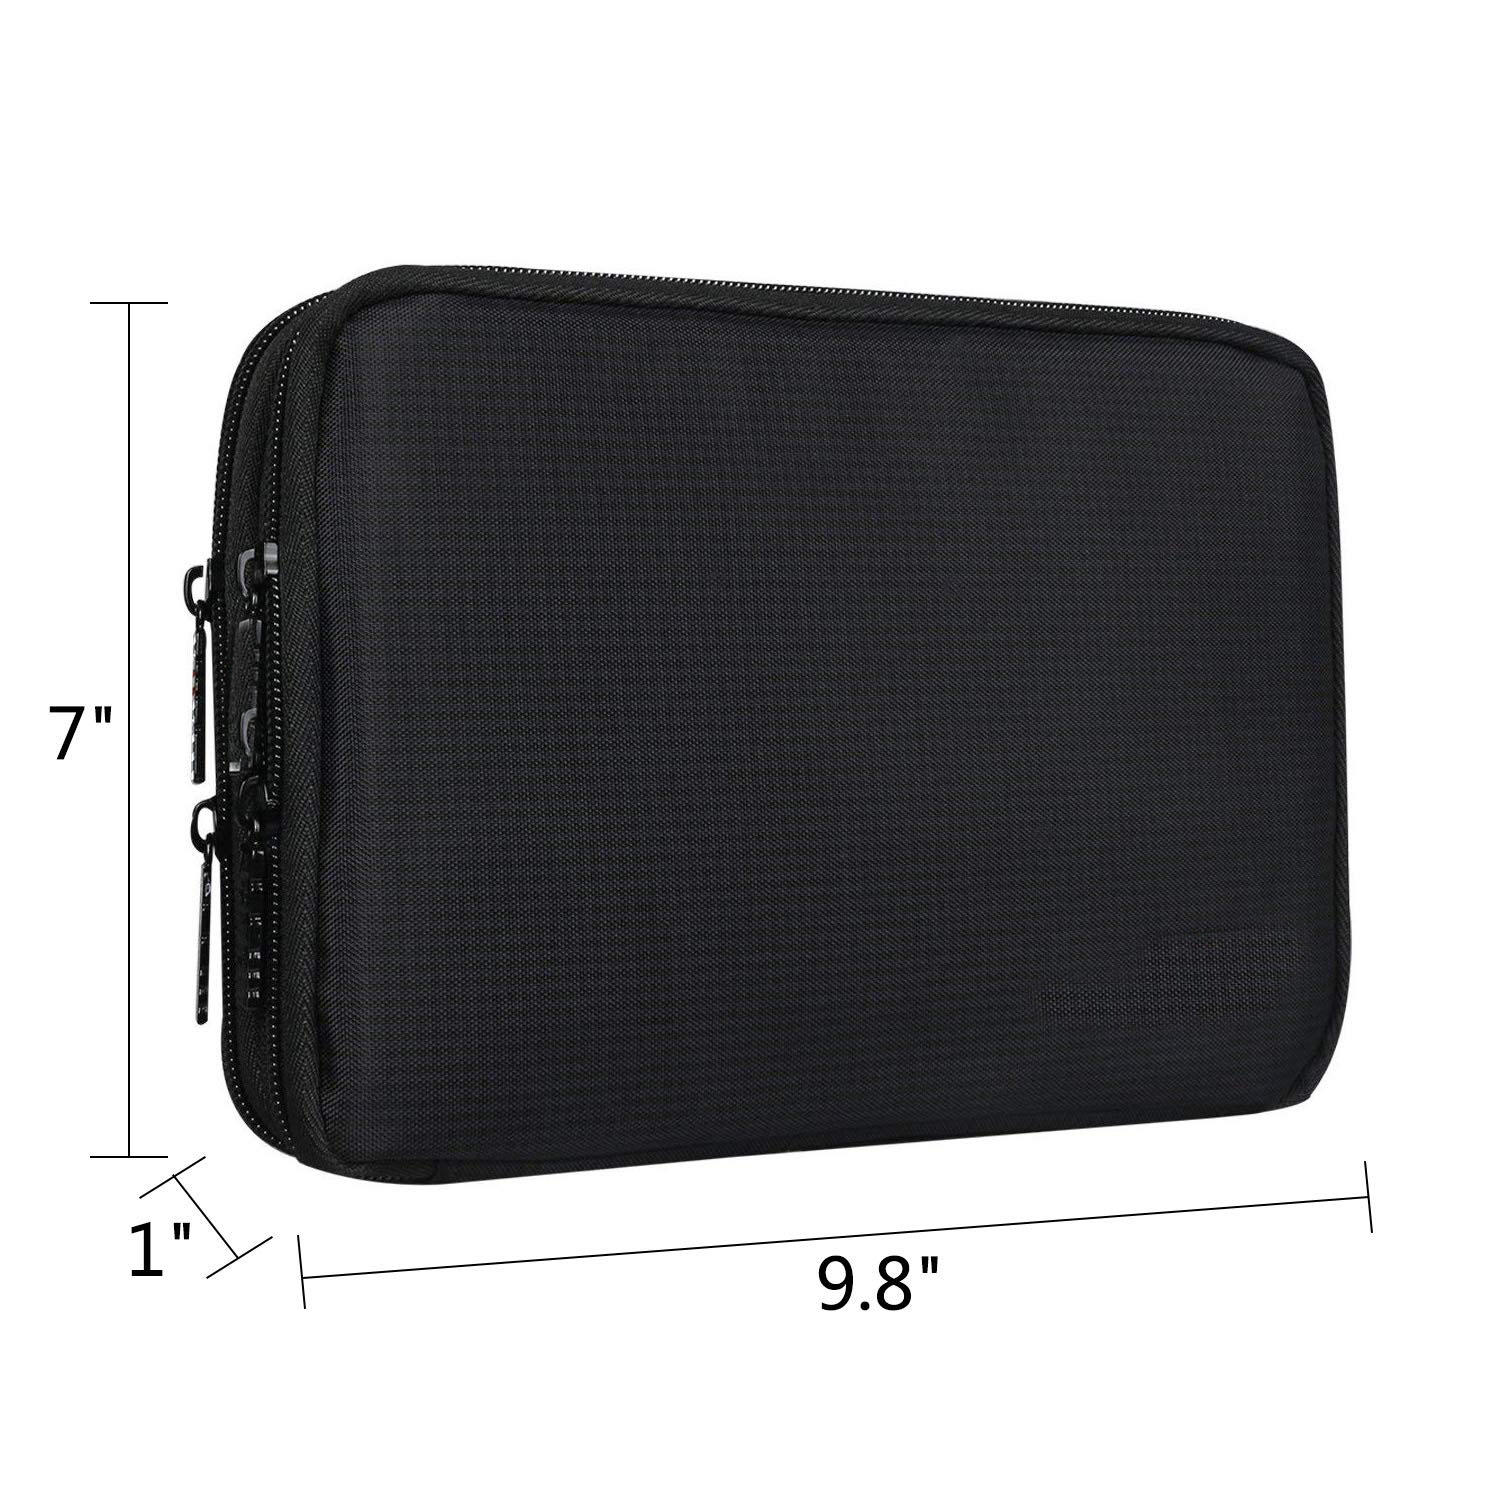 Double Layer Electronic Accessories Organizer, Travel Gadget Bag for Cables, USB Flash Drive, Plug and More, Perfect Size